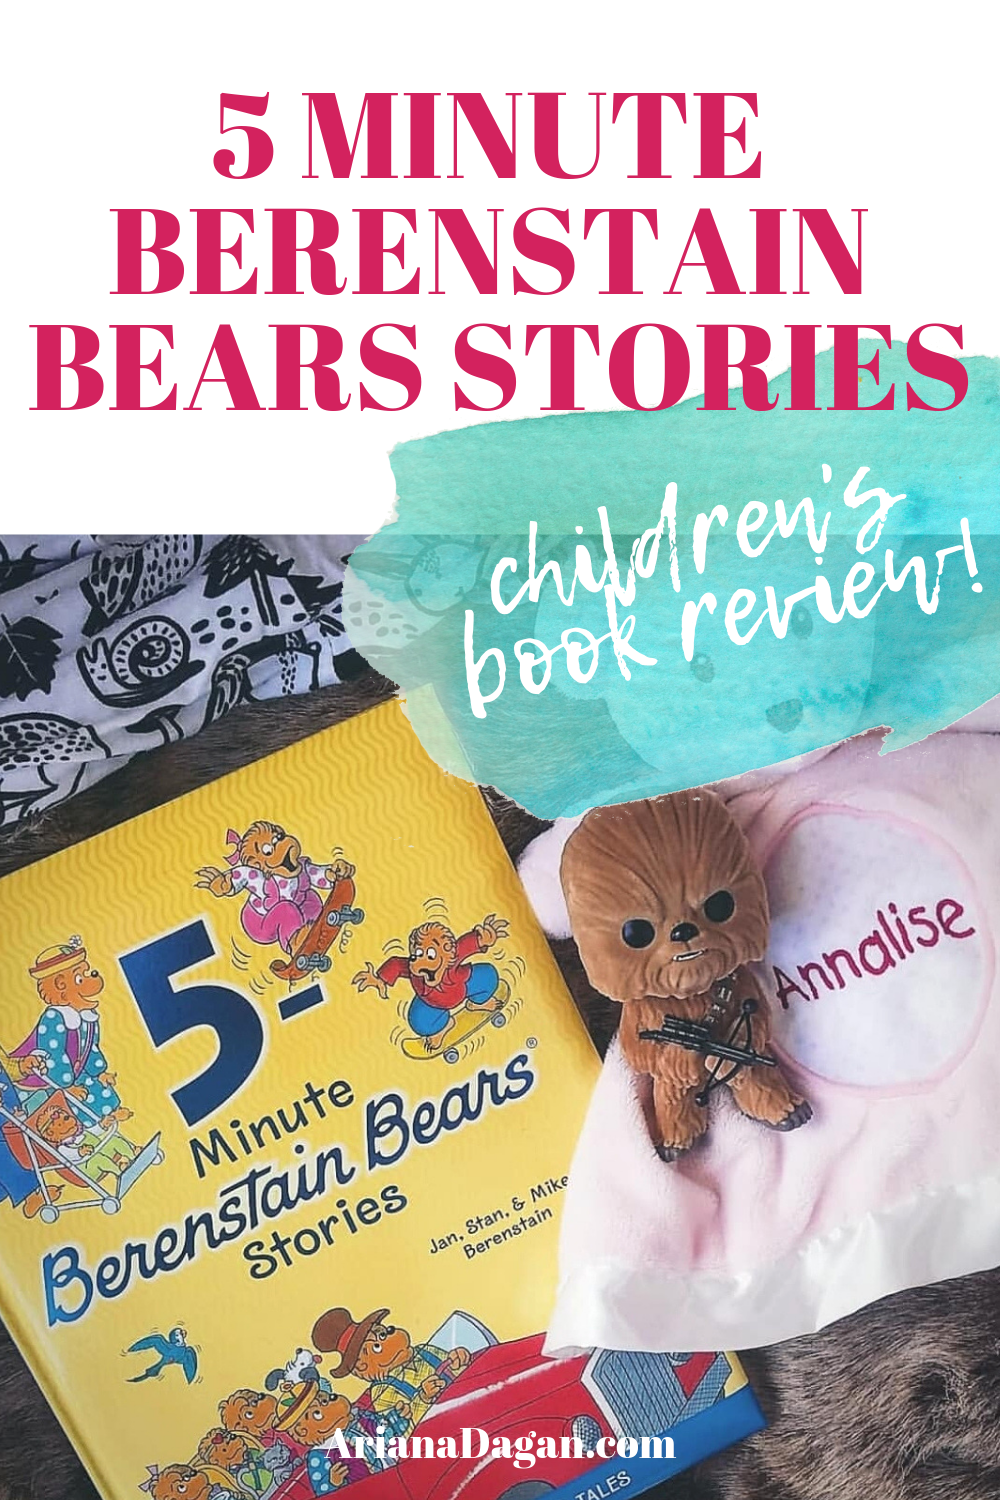 5 Minute Berenstain Bears Stories Children's Book Reviews by Ariana Dagan